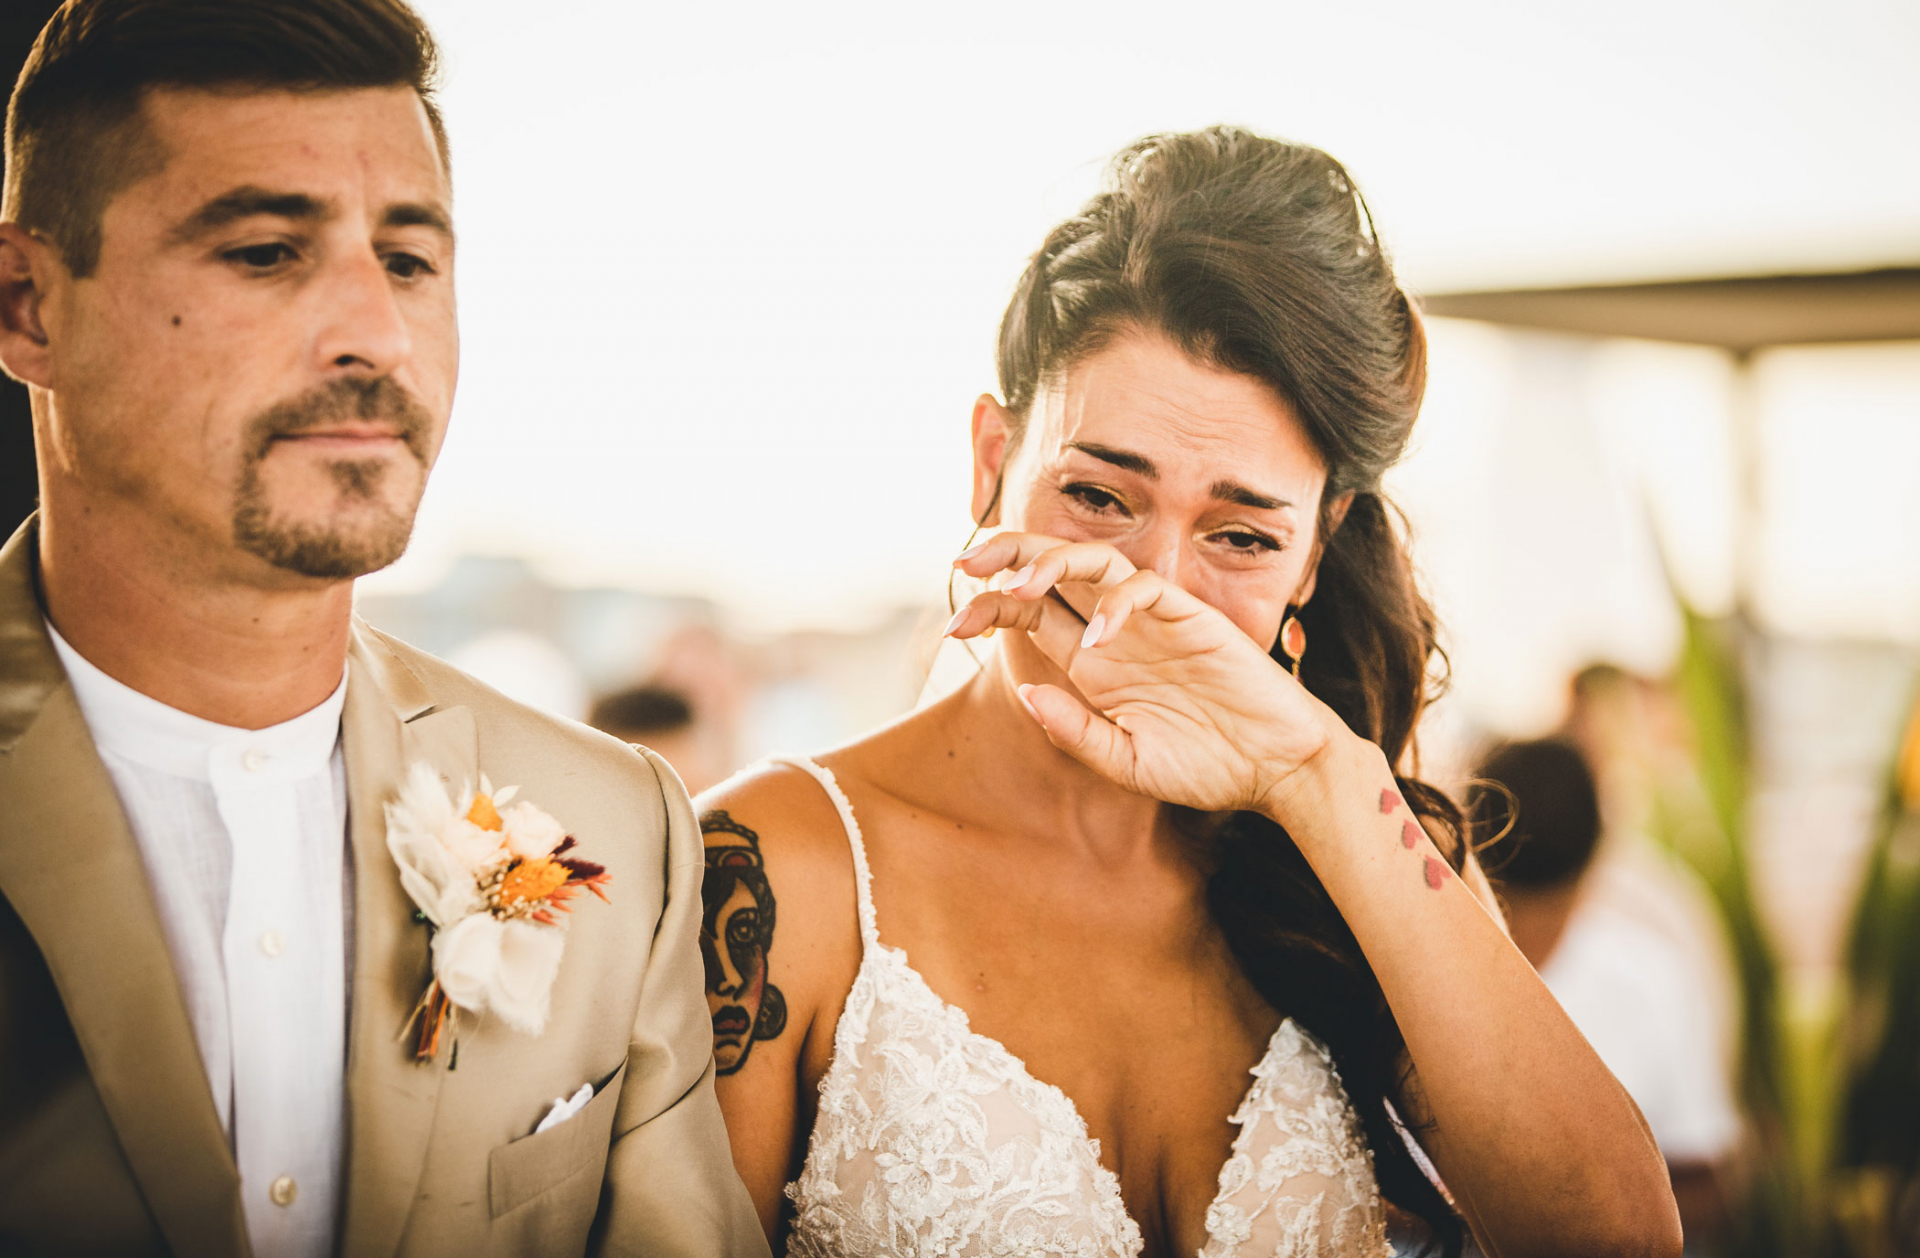 Destination Italian Wedding Photography | The bride is Overcome with emotion during the ceremony